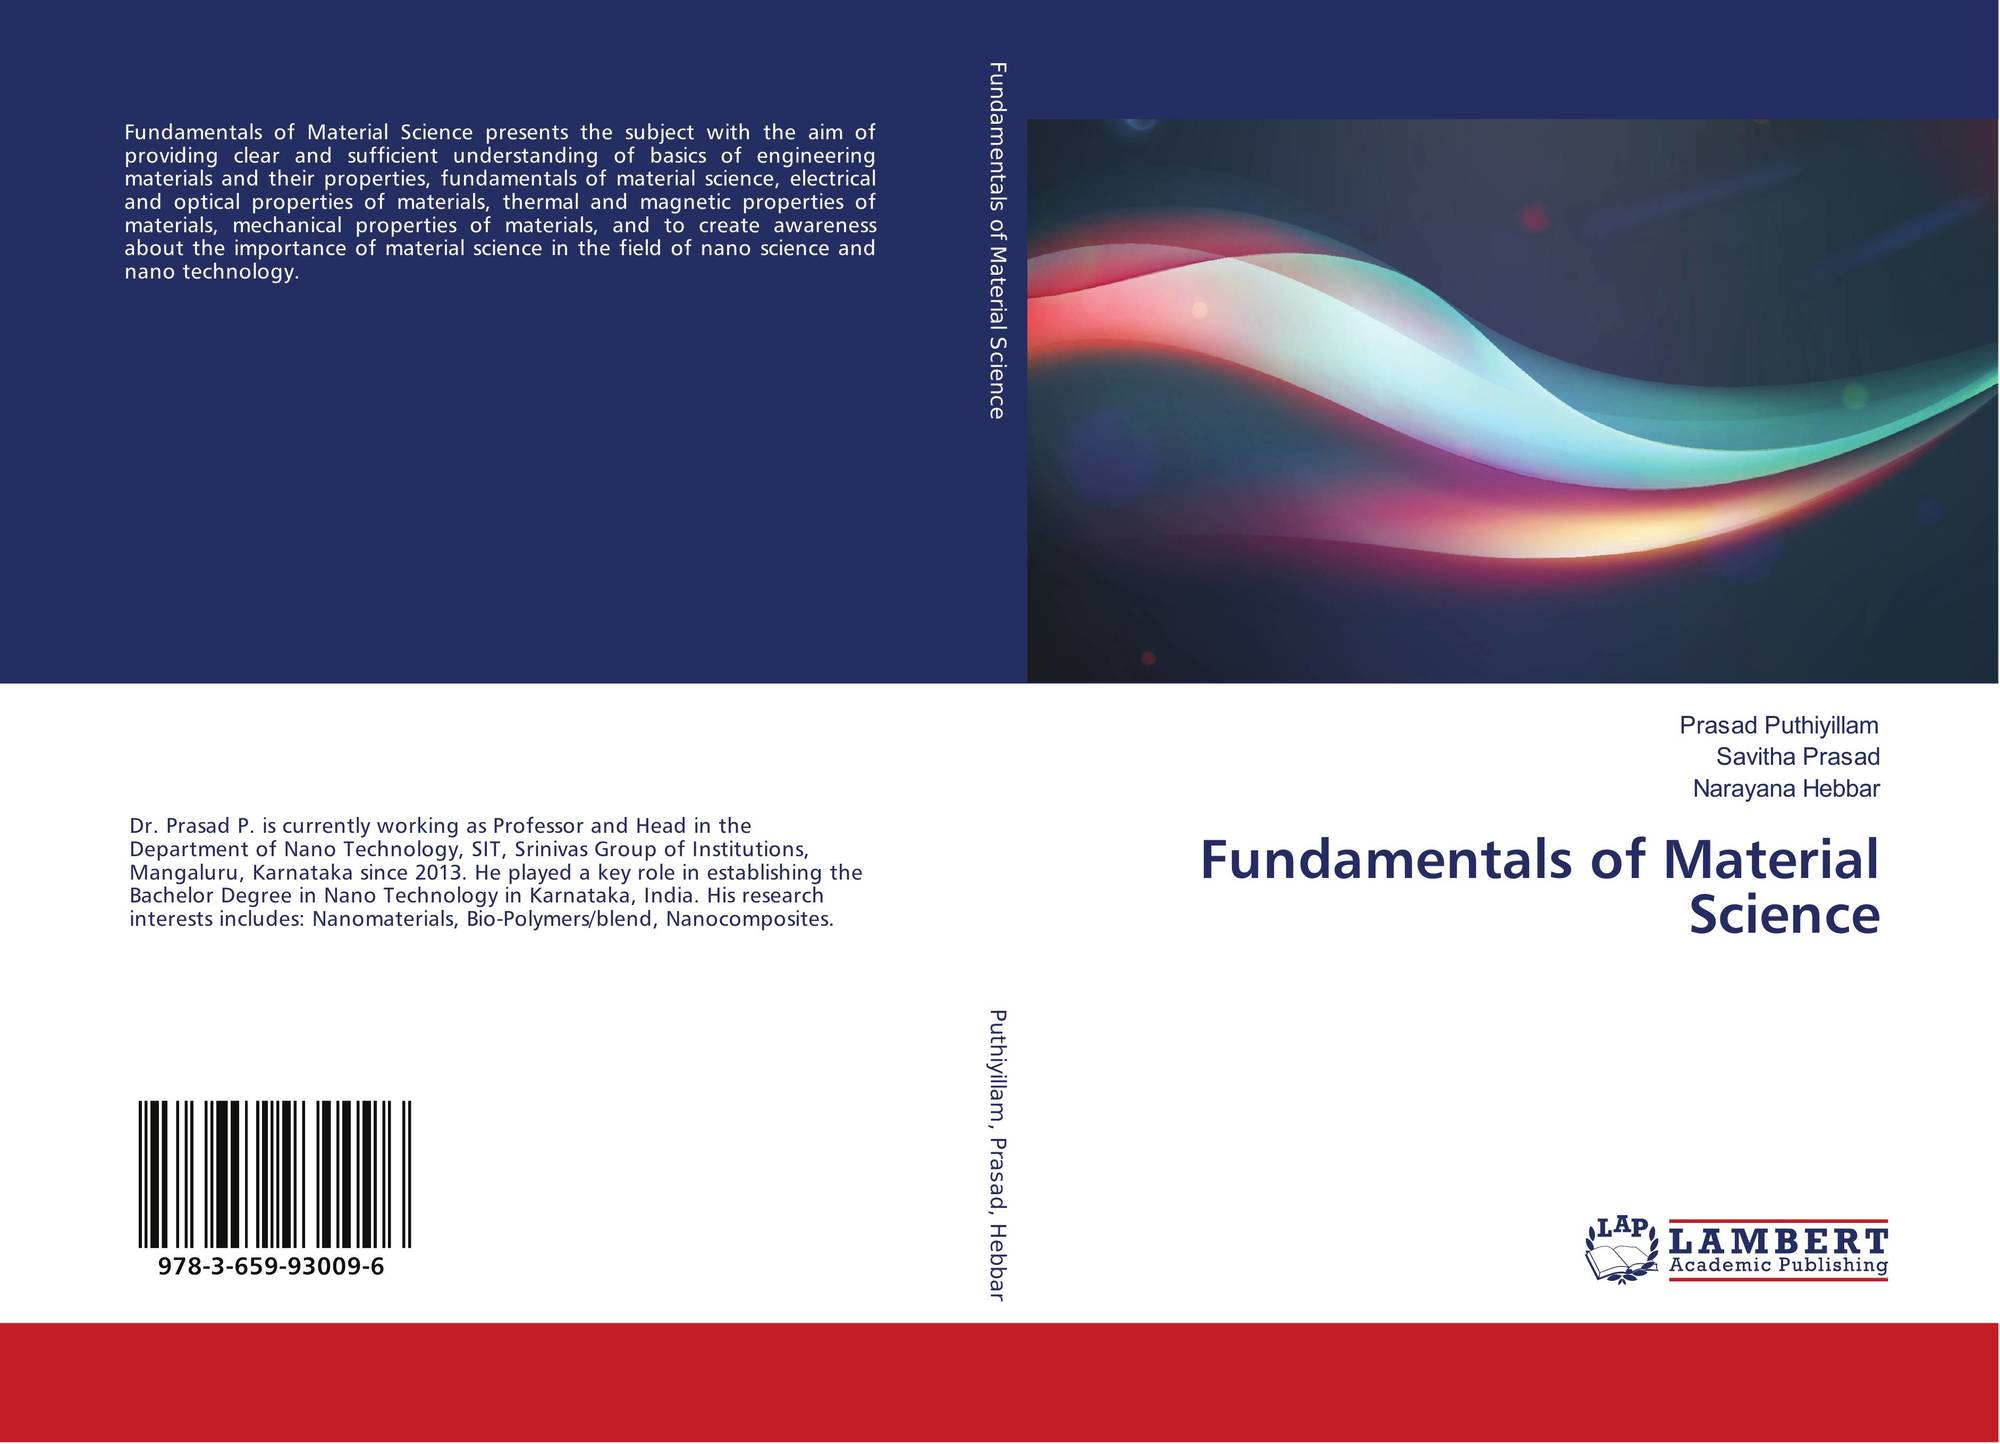 Fundamentals of Material Science, 978-3-659-93009-6, 3659930091